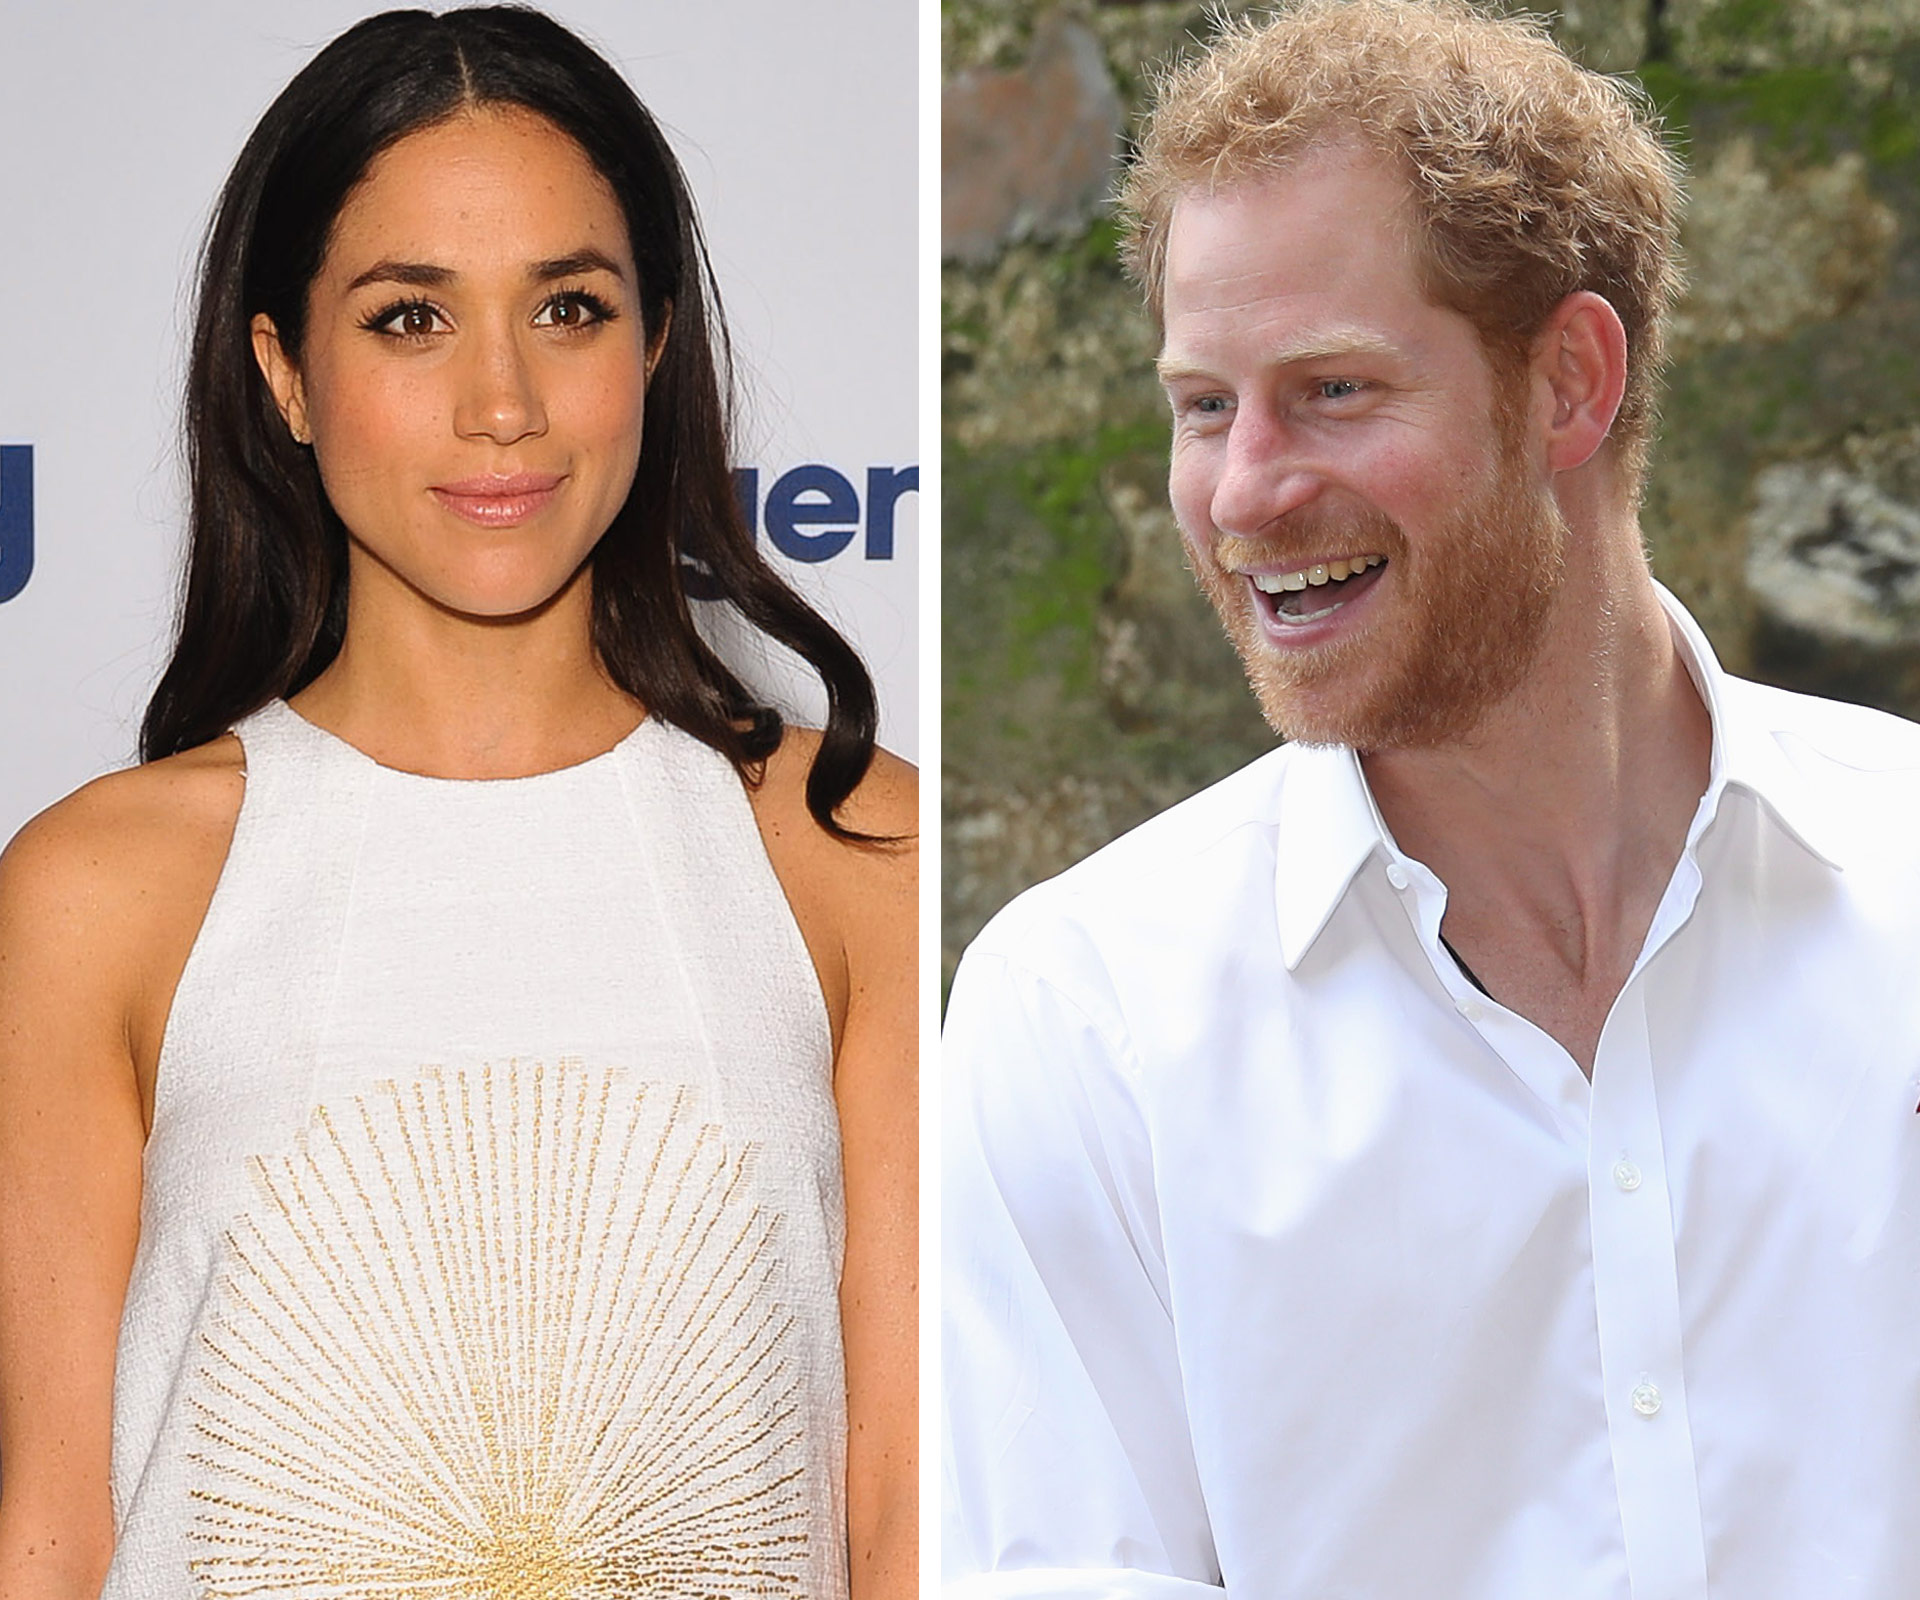 Meghan Markle lands in London to visit Prince Harry